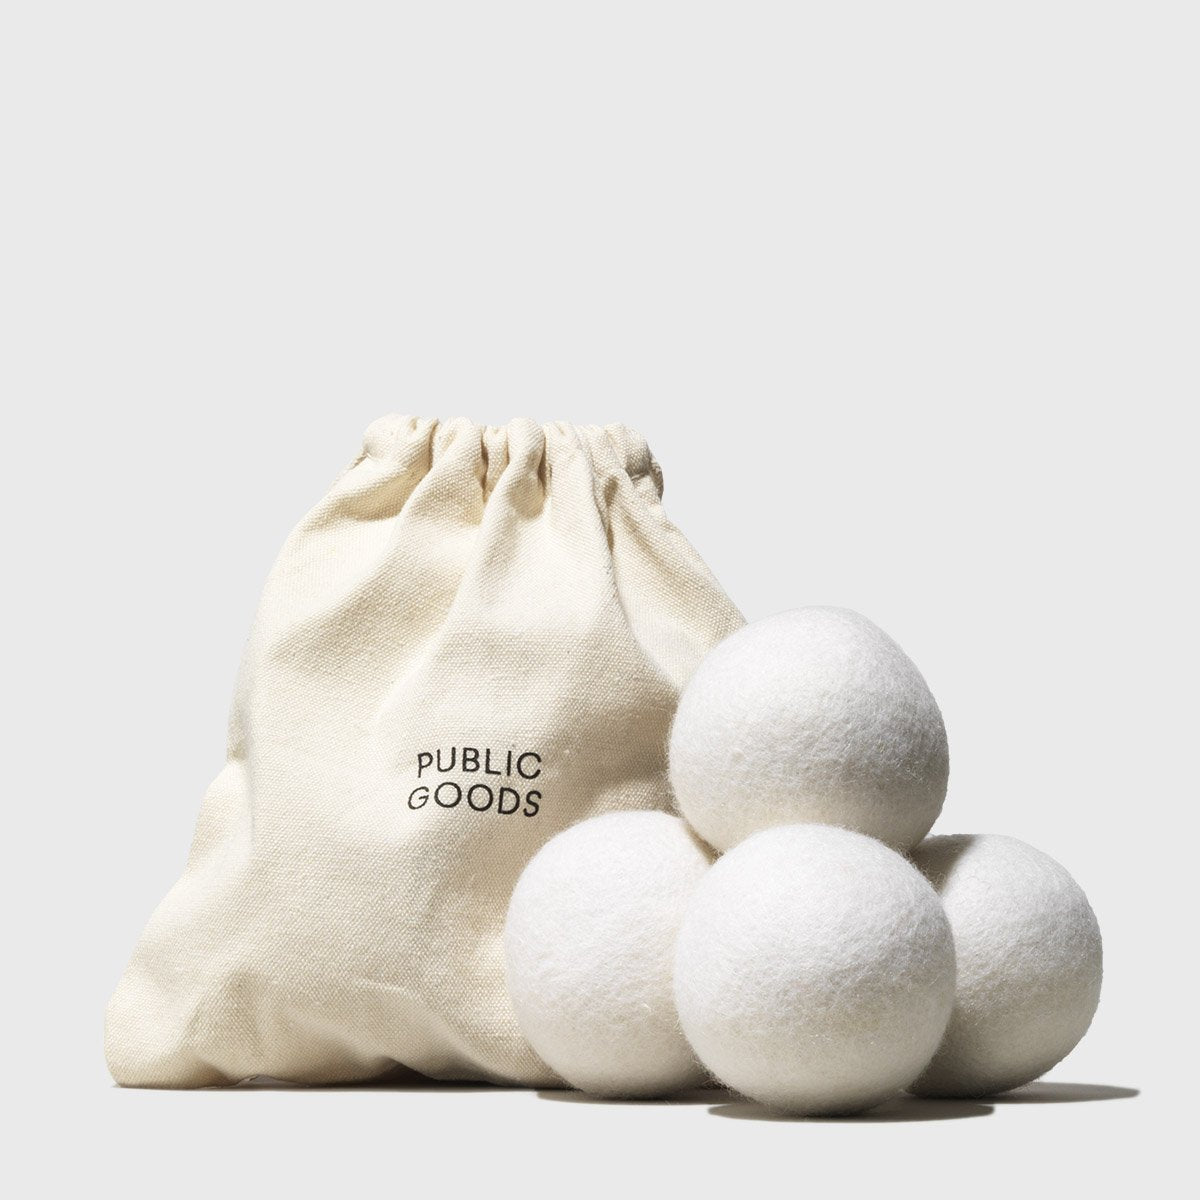 Wool Dryer Balls (Case of 75)